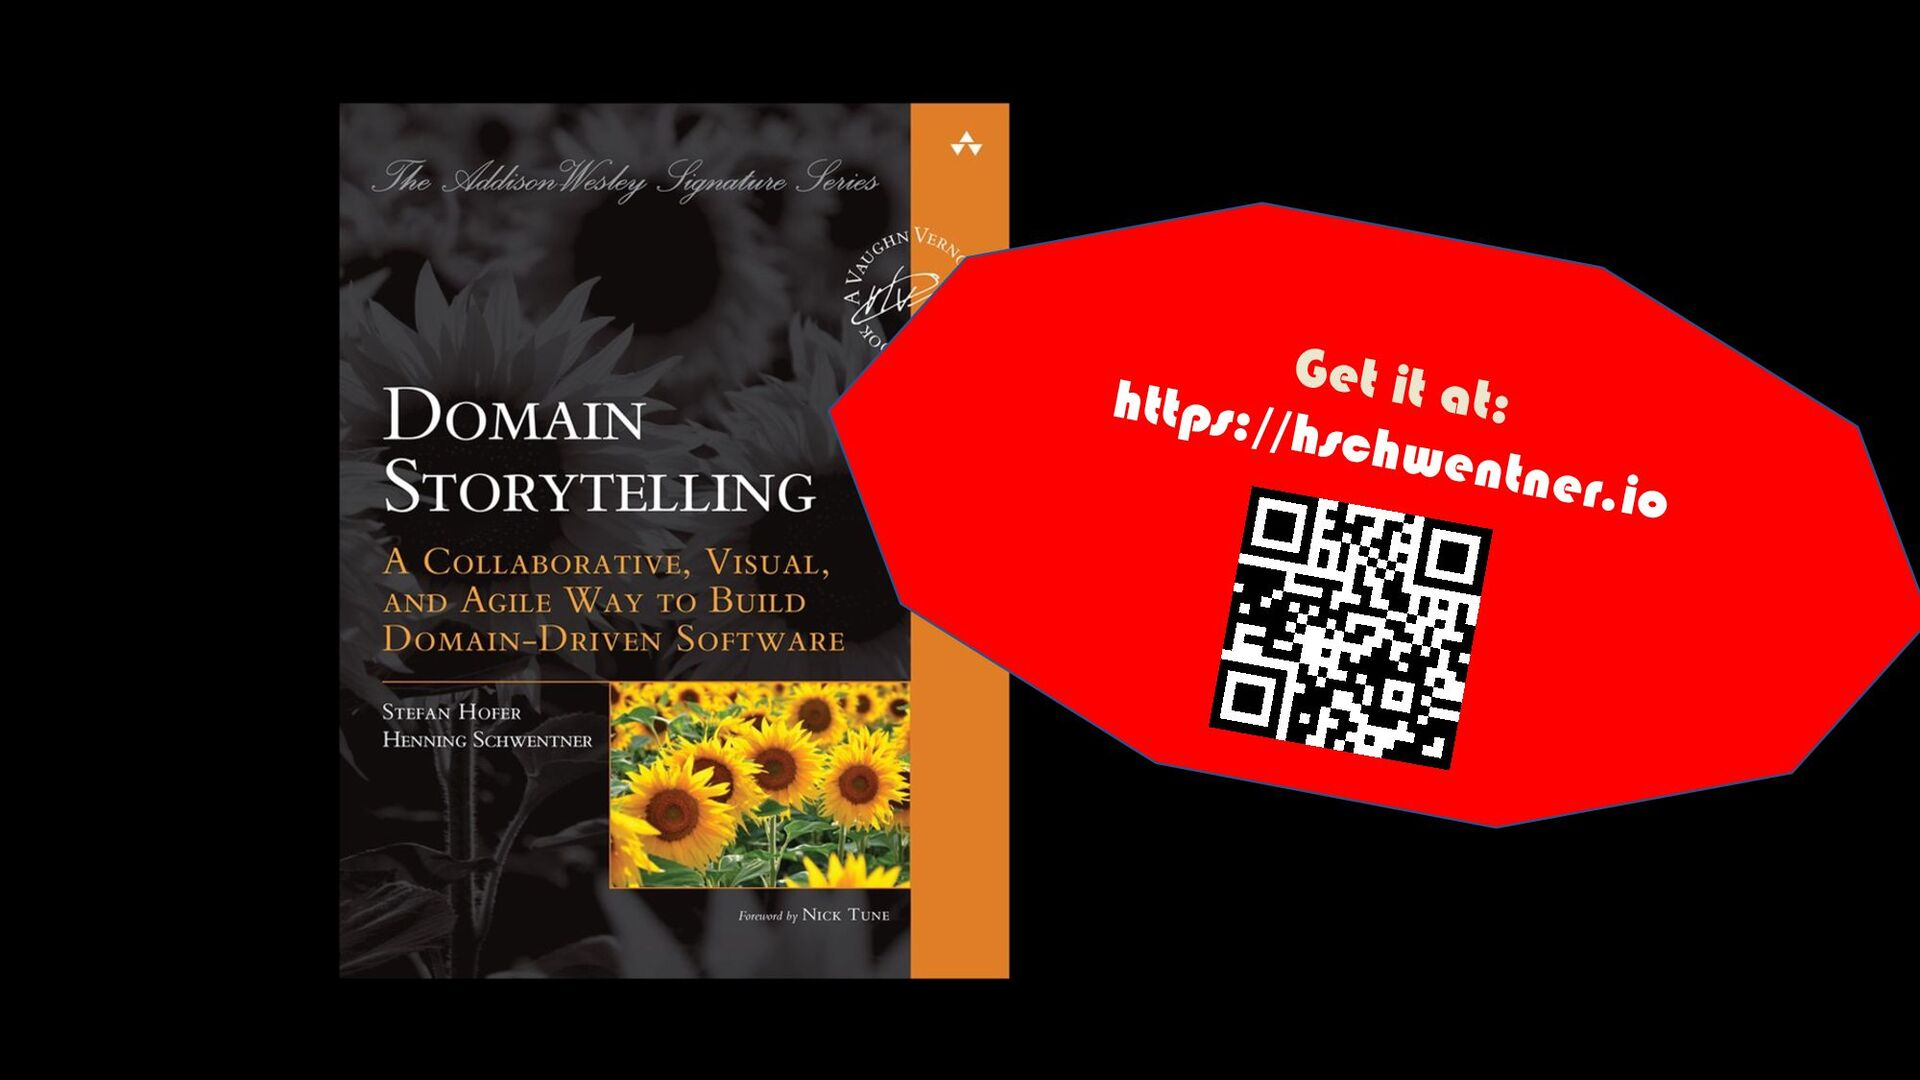 @hschwentner What about Event Storming?